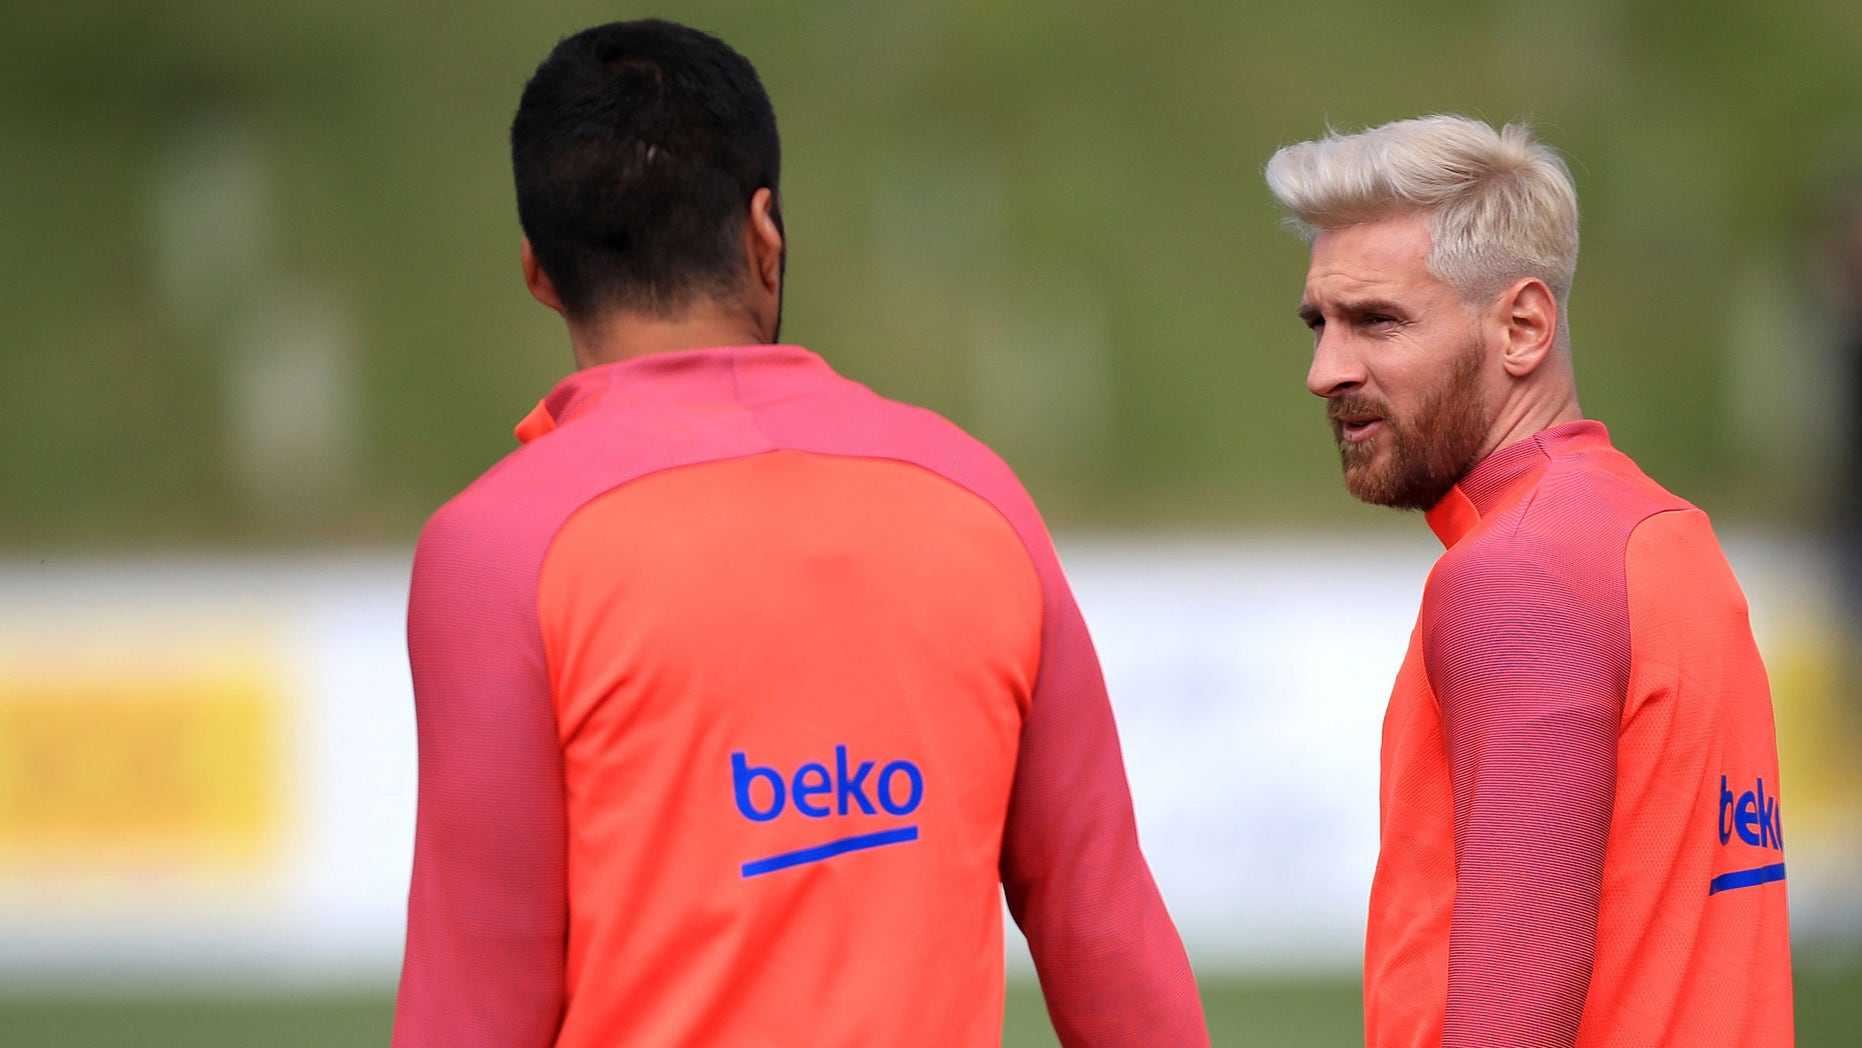 Barcelona's  star striker Lionel Messi, right, speaks with a teammate  during a training session at St George's Park, Burton, England Tuesday July 26, 2016. Barcelona are using the English FA's St. George's Park as a summer training camp. (Mike Egerton/PA via AP)